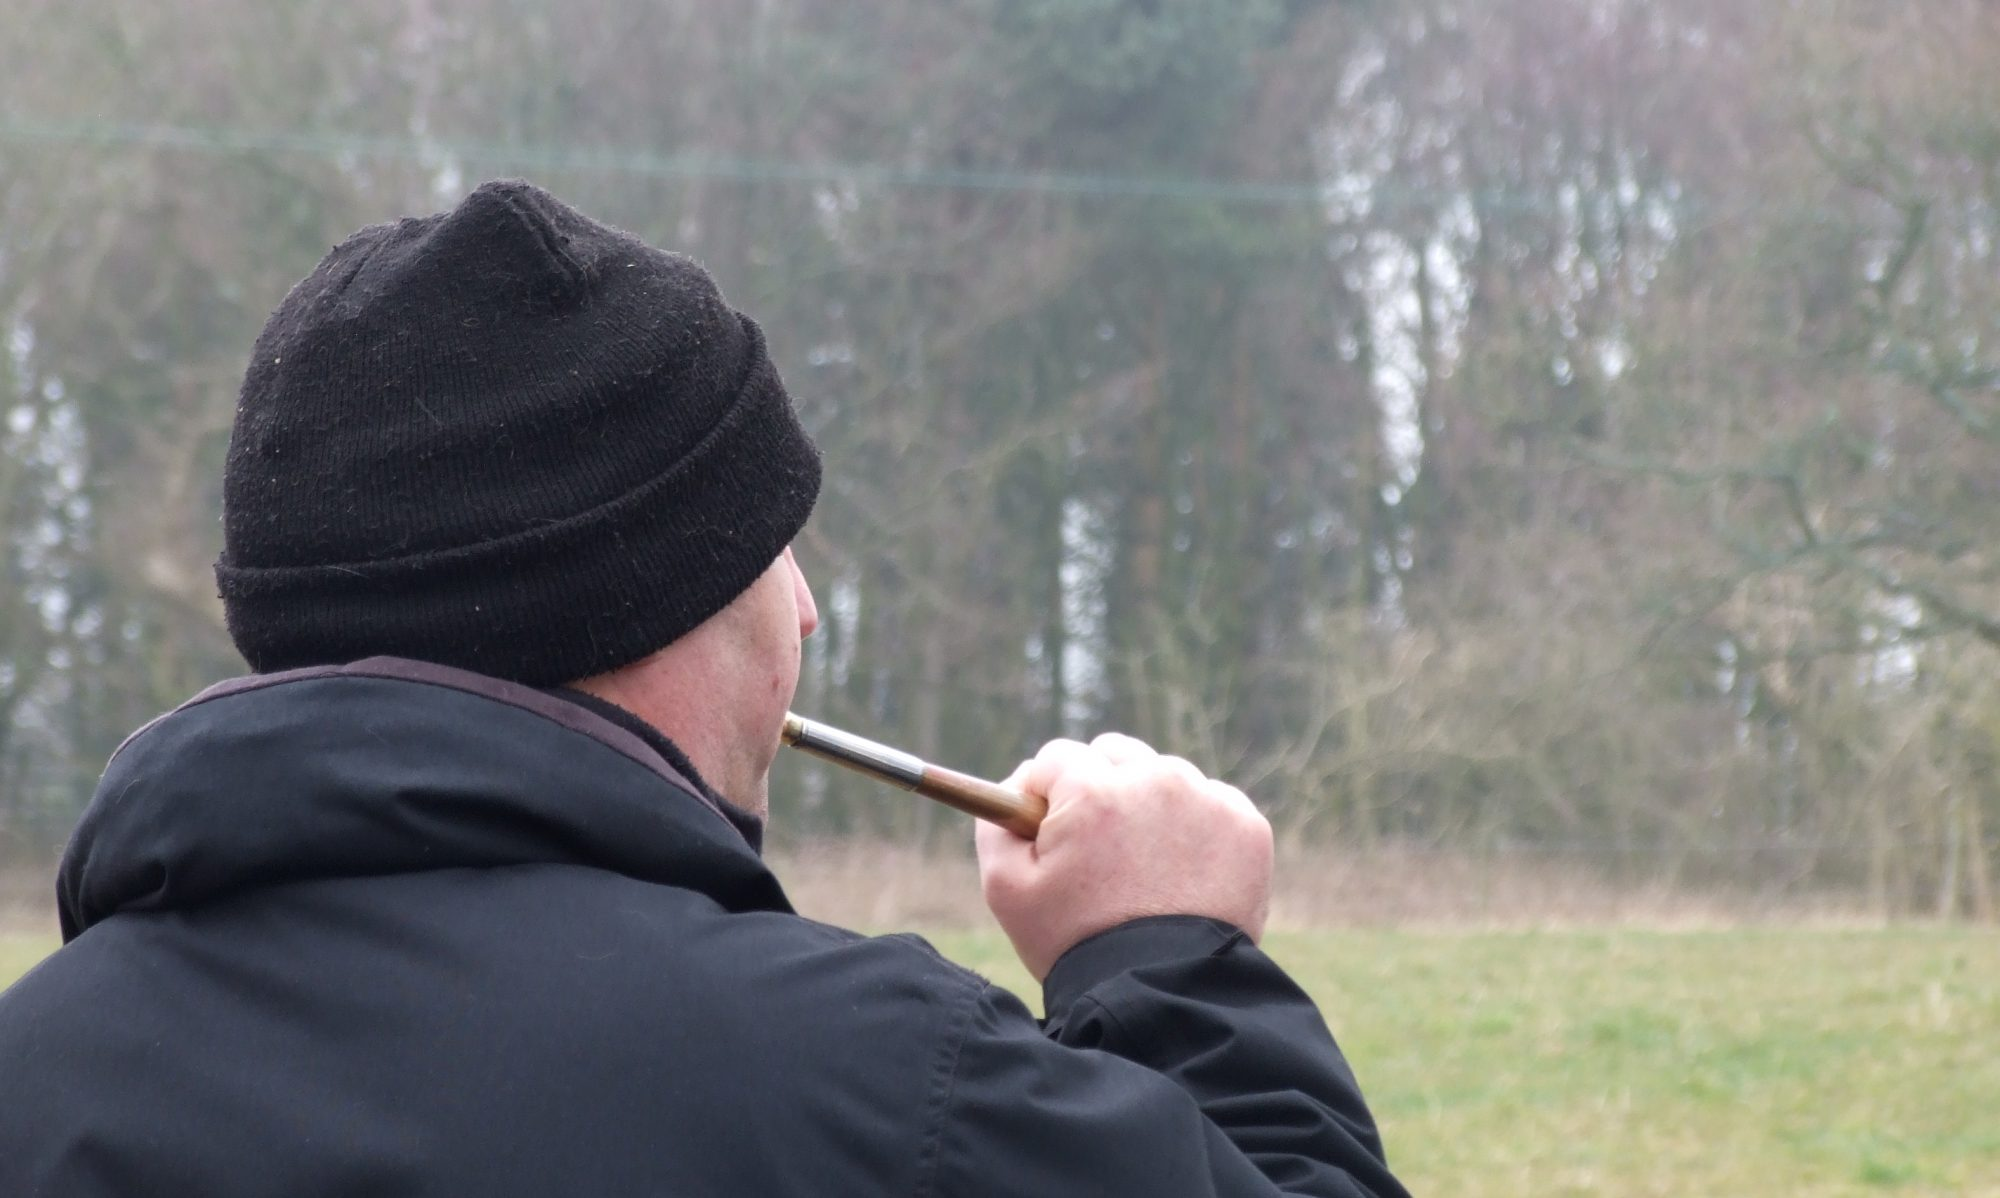 NORTH WEST HUNT SABOTEURS